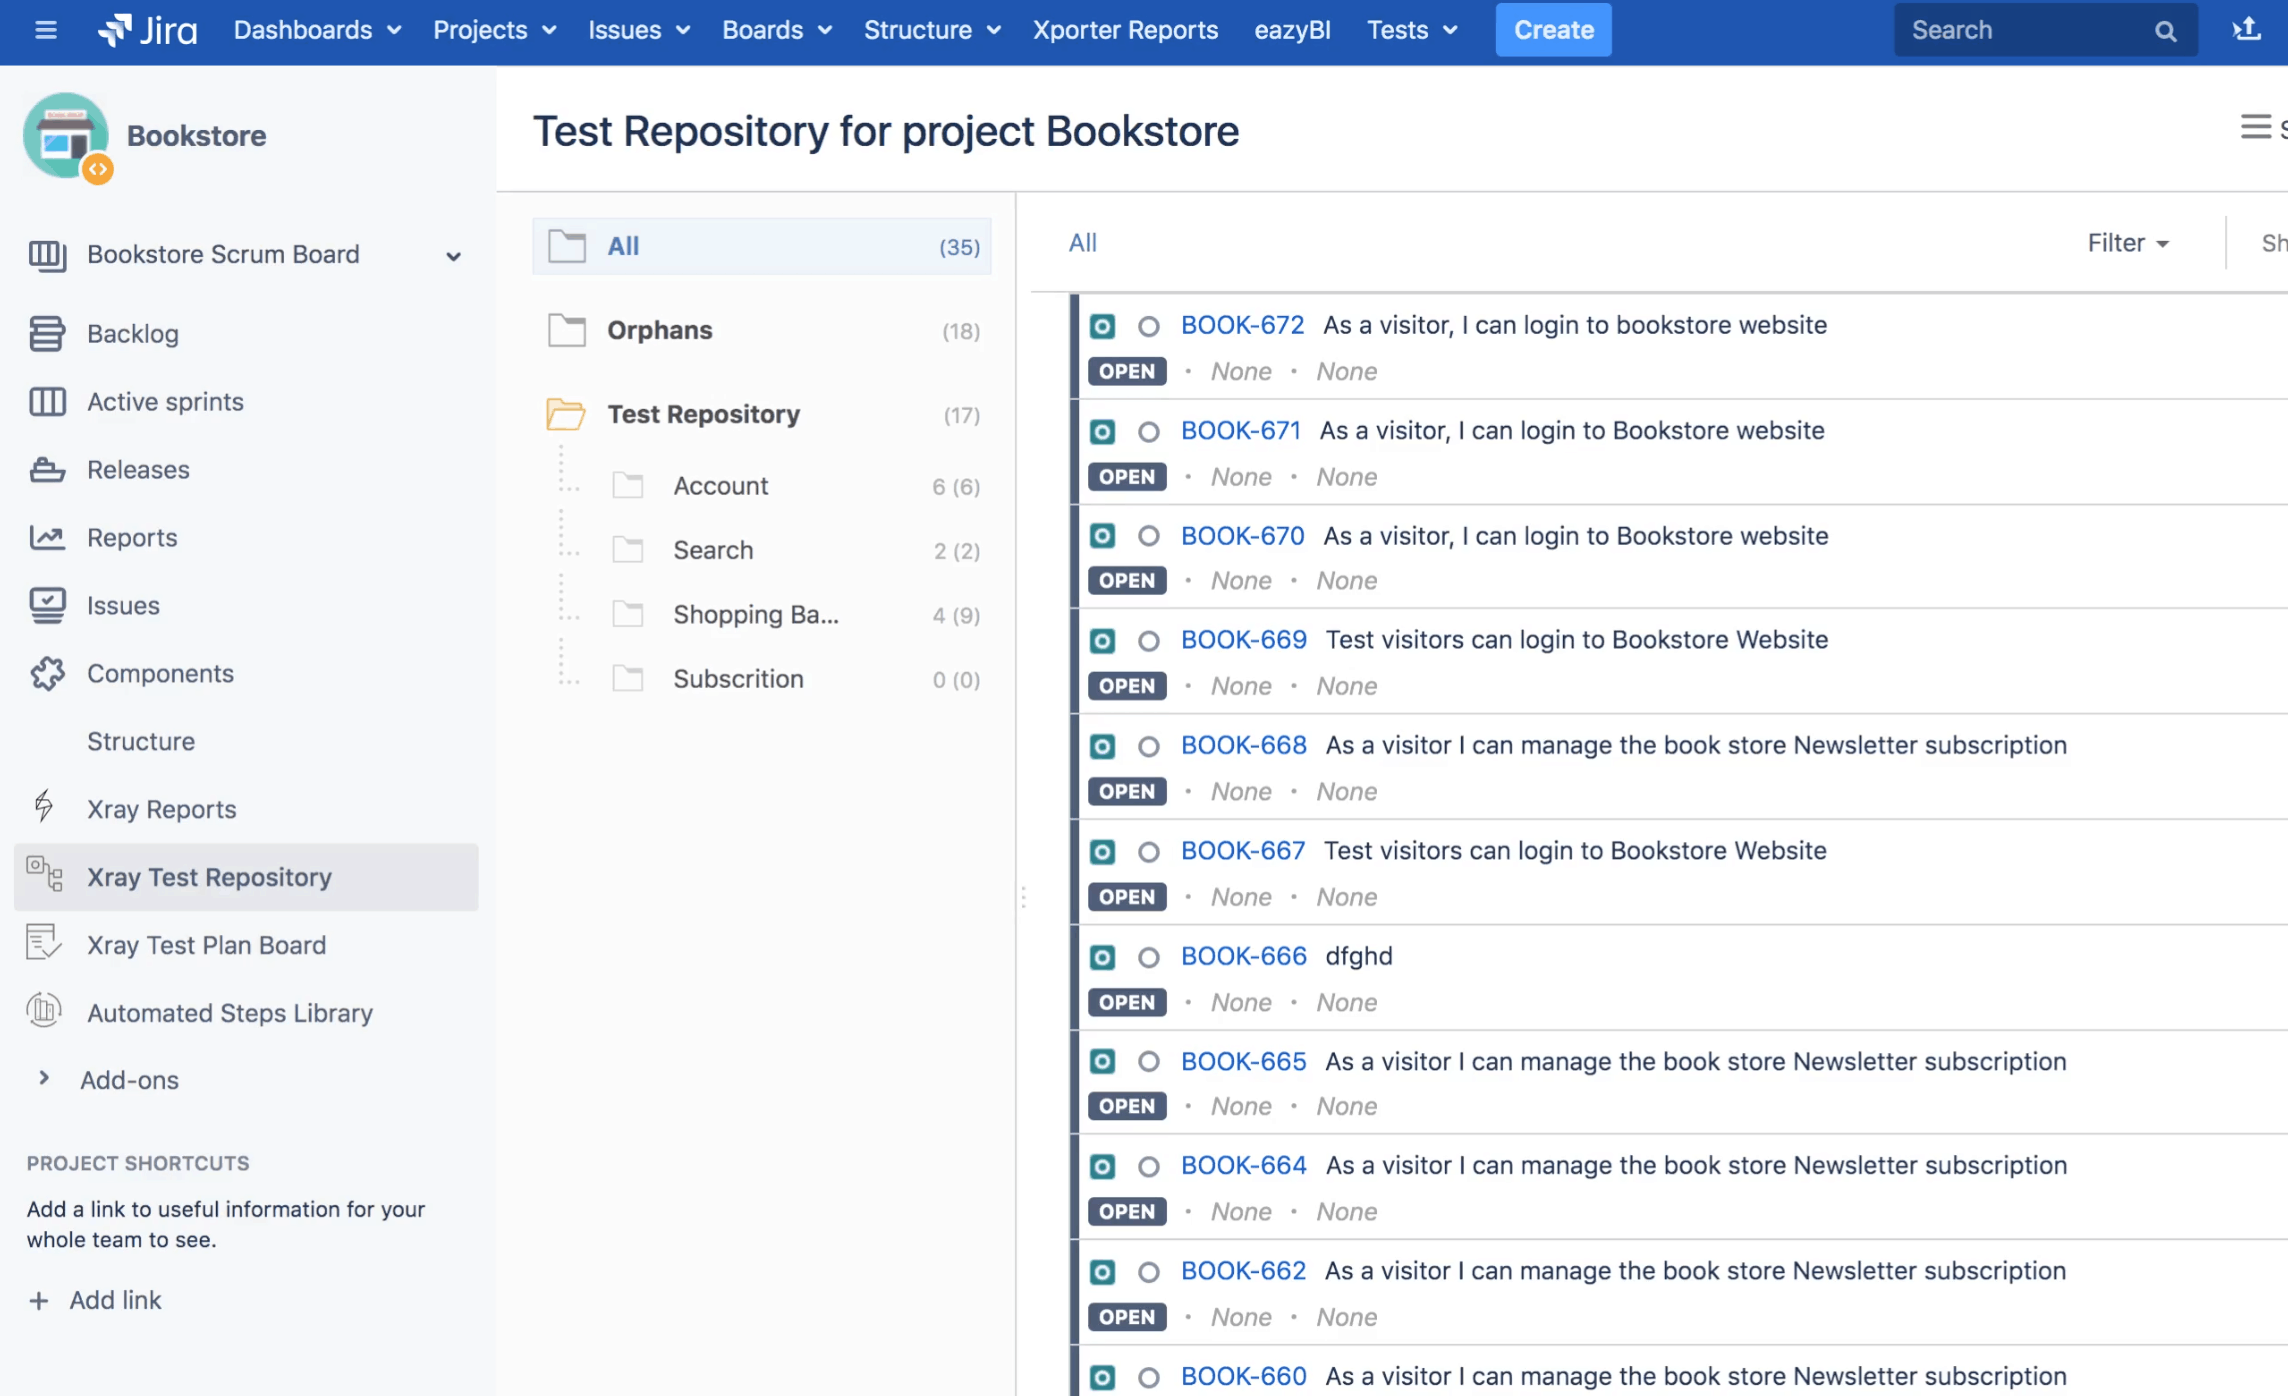 jira test repository with xray